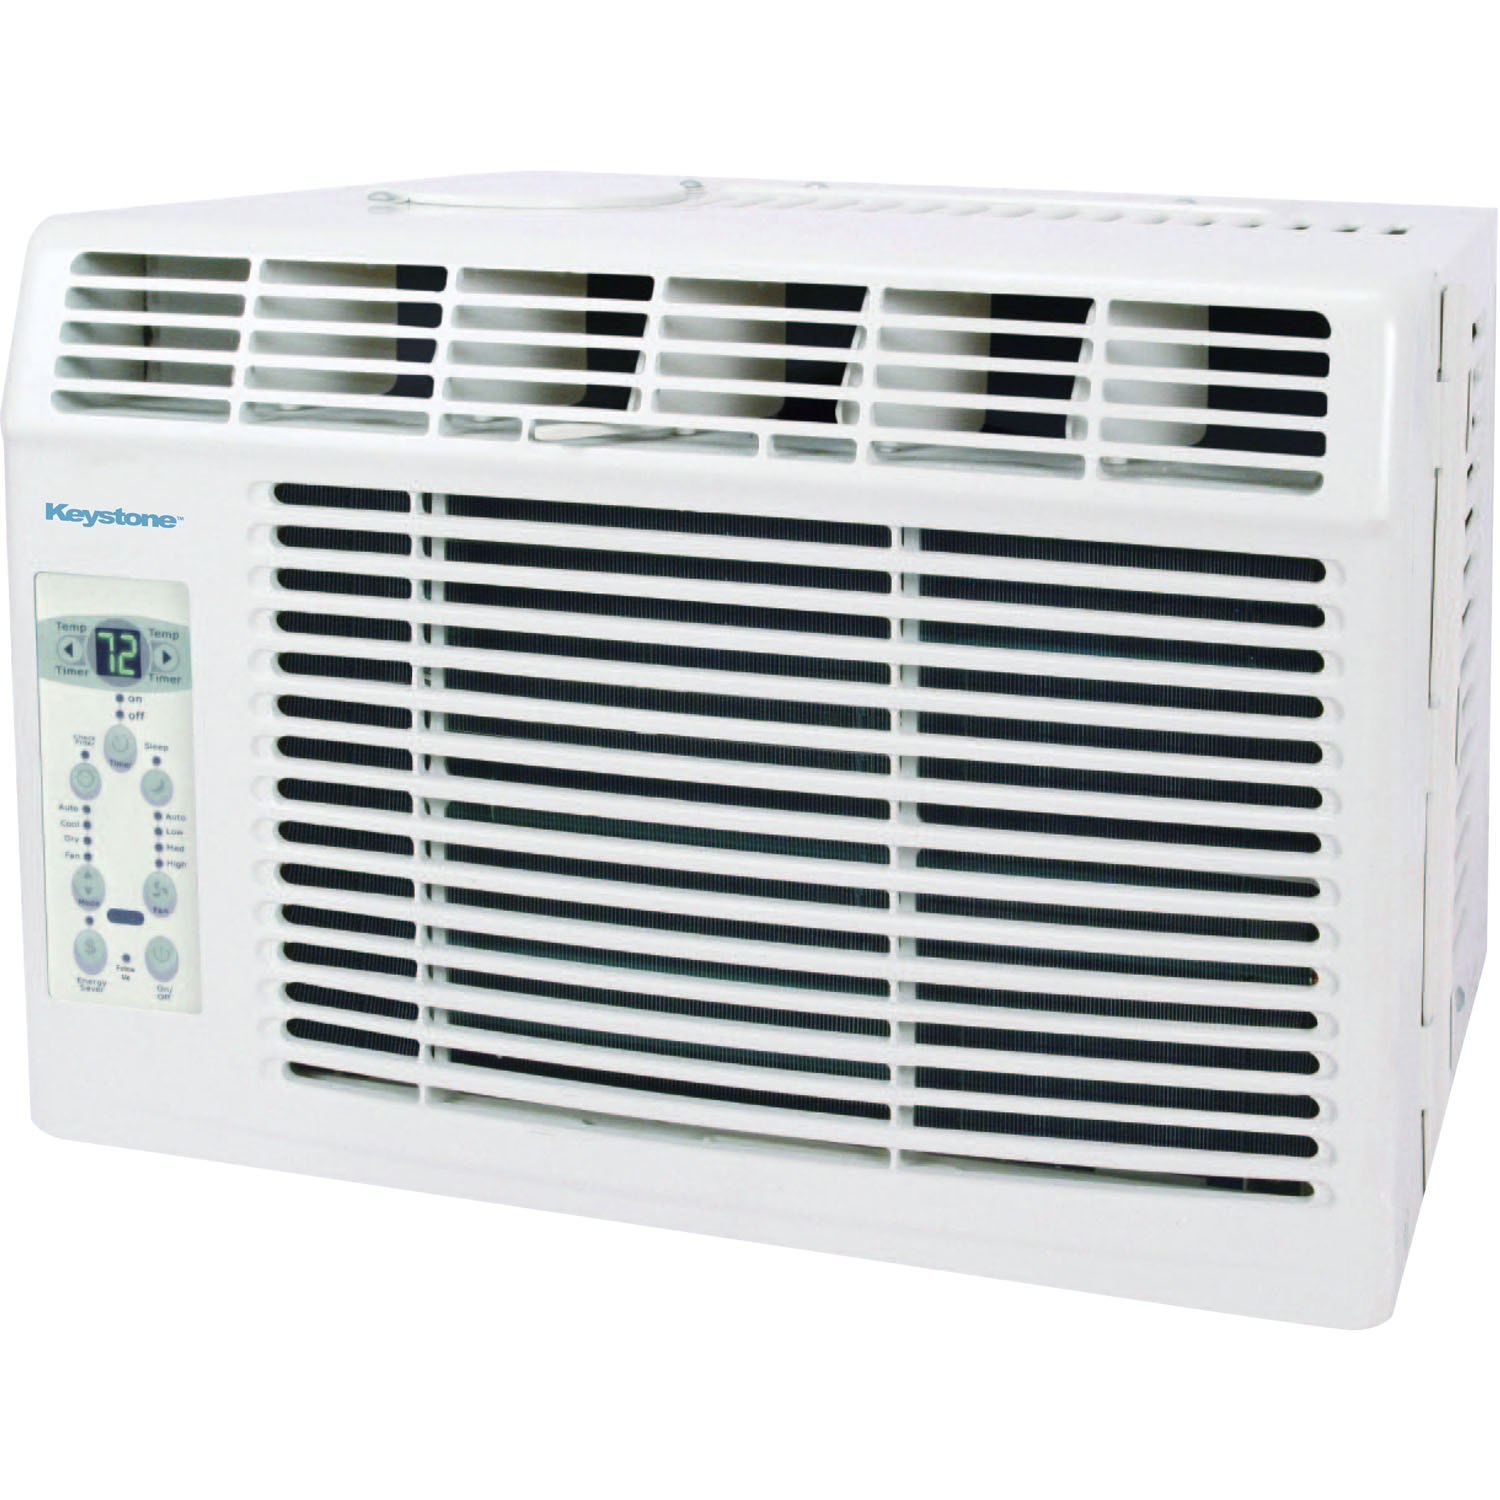 Keystone 5,000 BTU 115V Window-Mounted Air Conditioner with Follow Me LCD Remote Control KSTAW05B